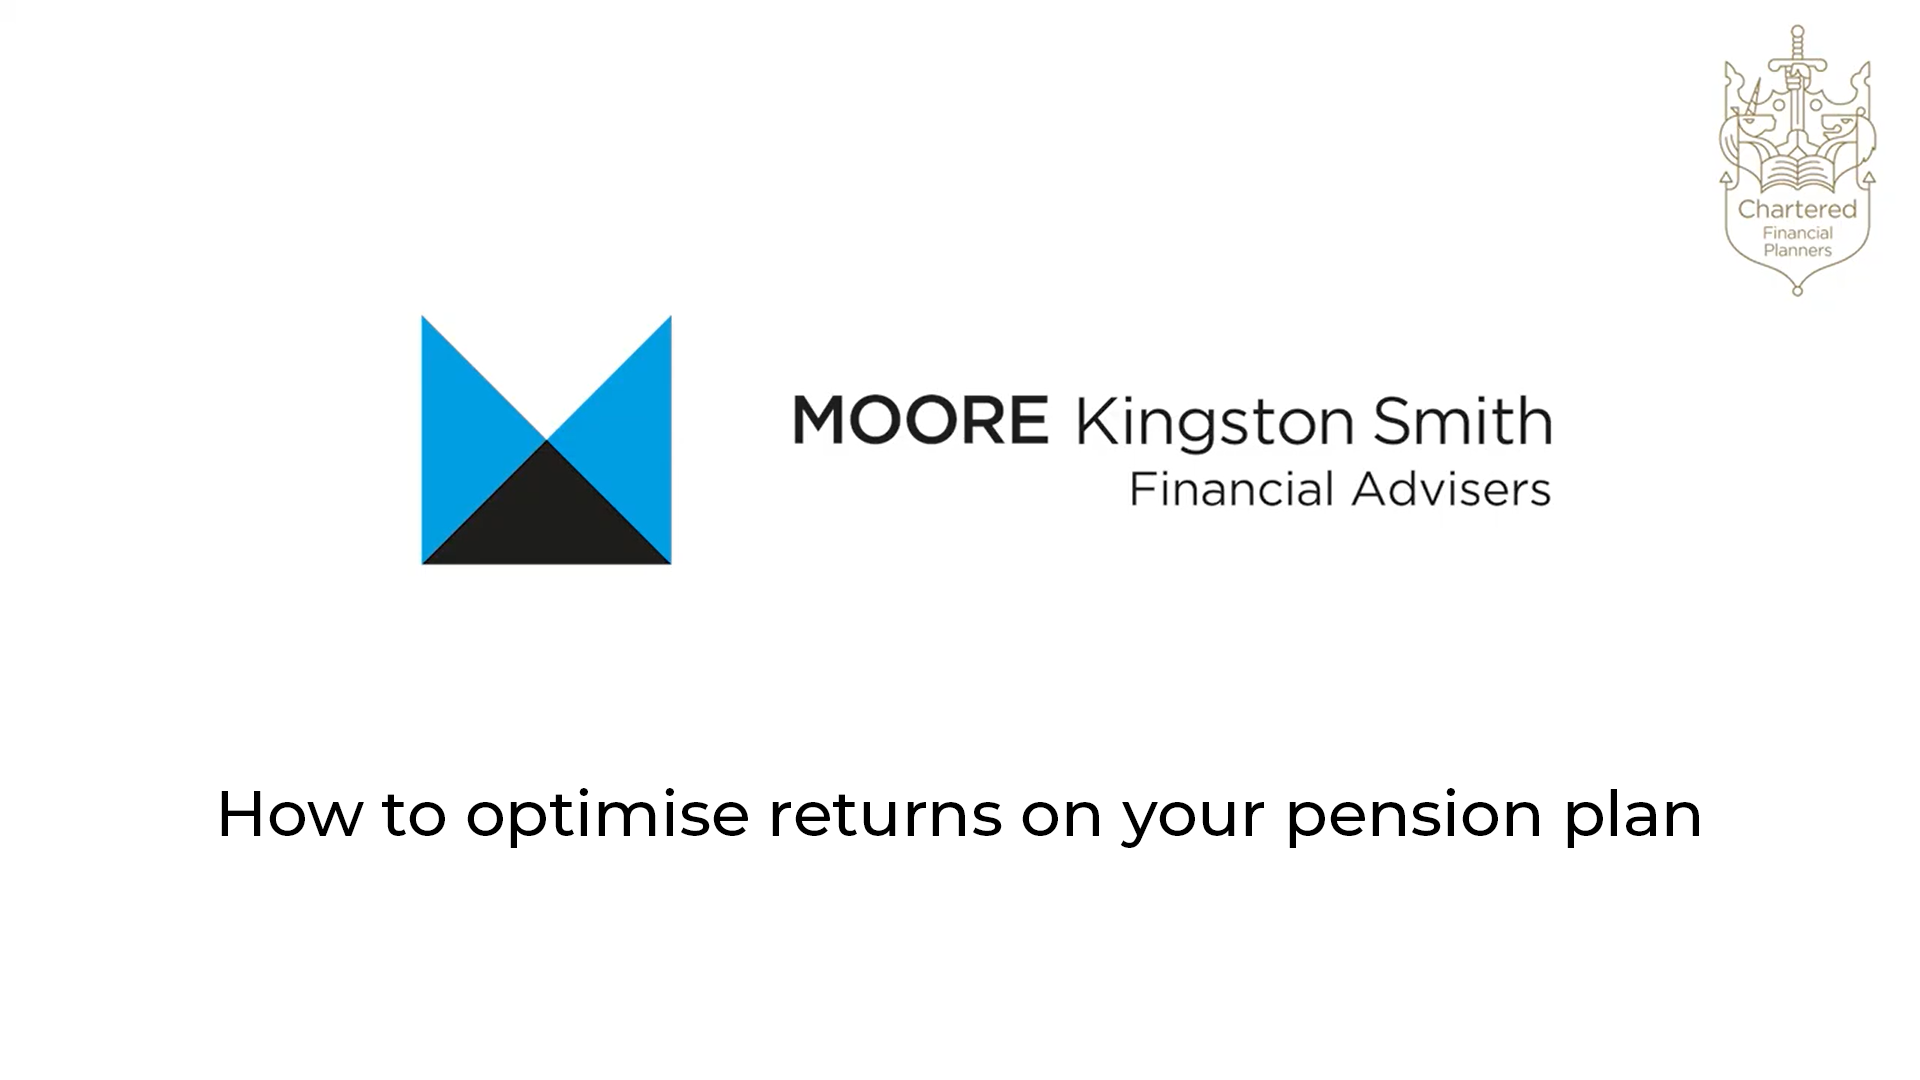 How to optimise returns on your pension plan